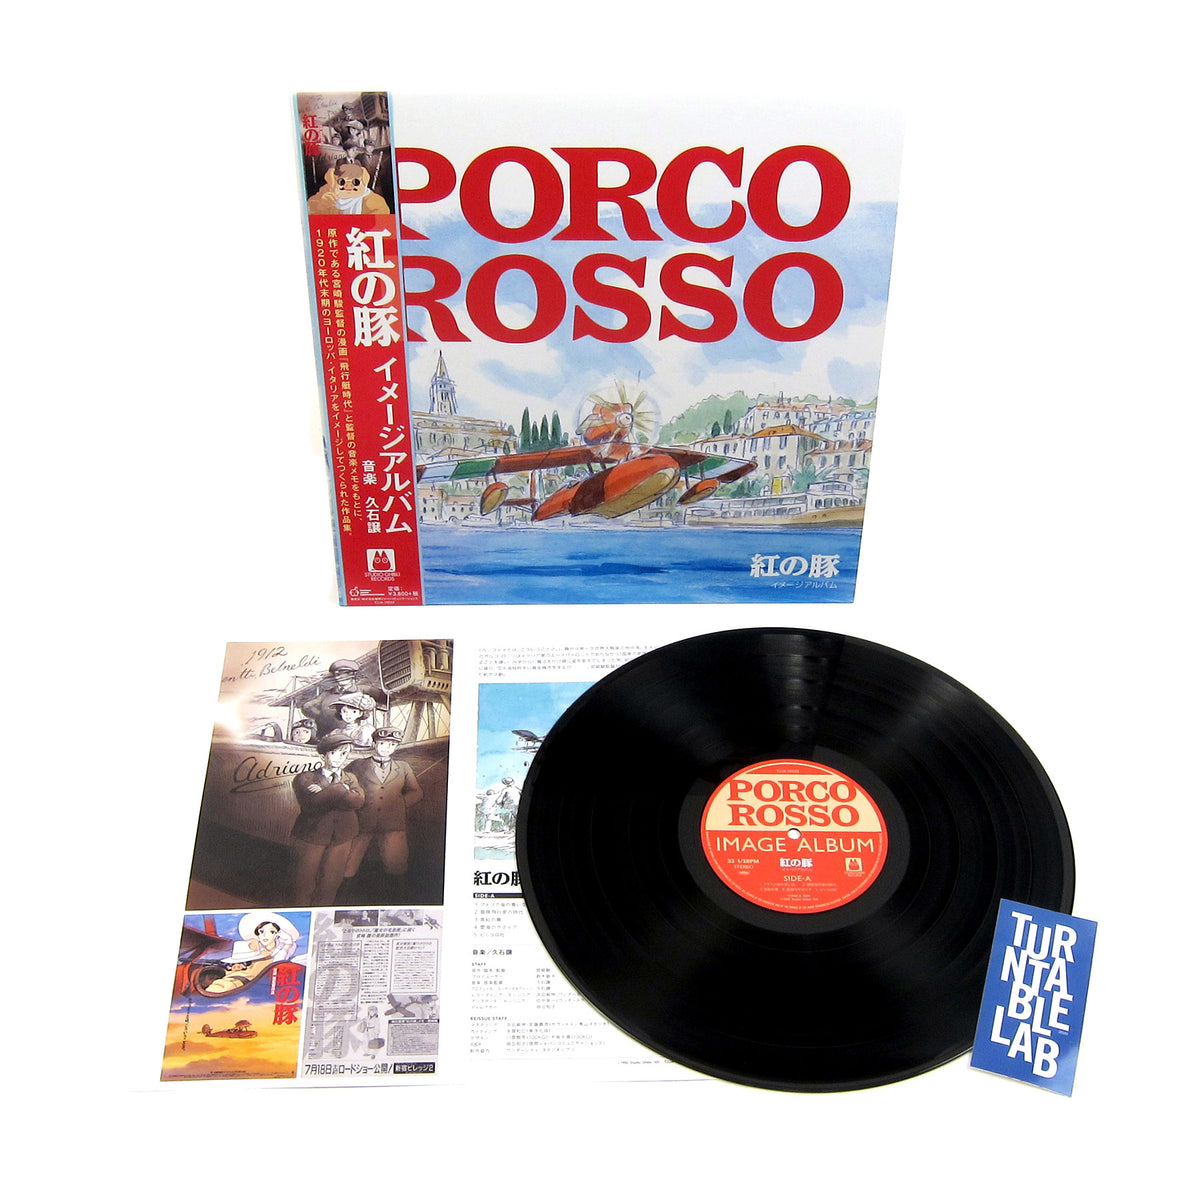 Joe Hisaishi: Porco Rosso Soundtrack Image Album Vinyl LP